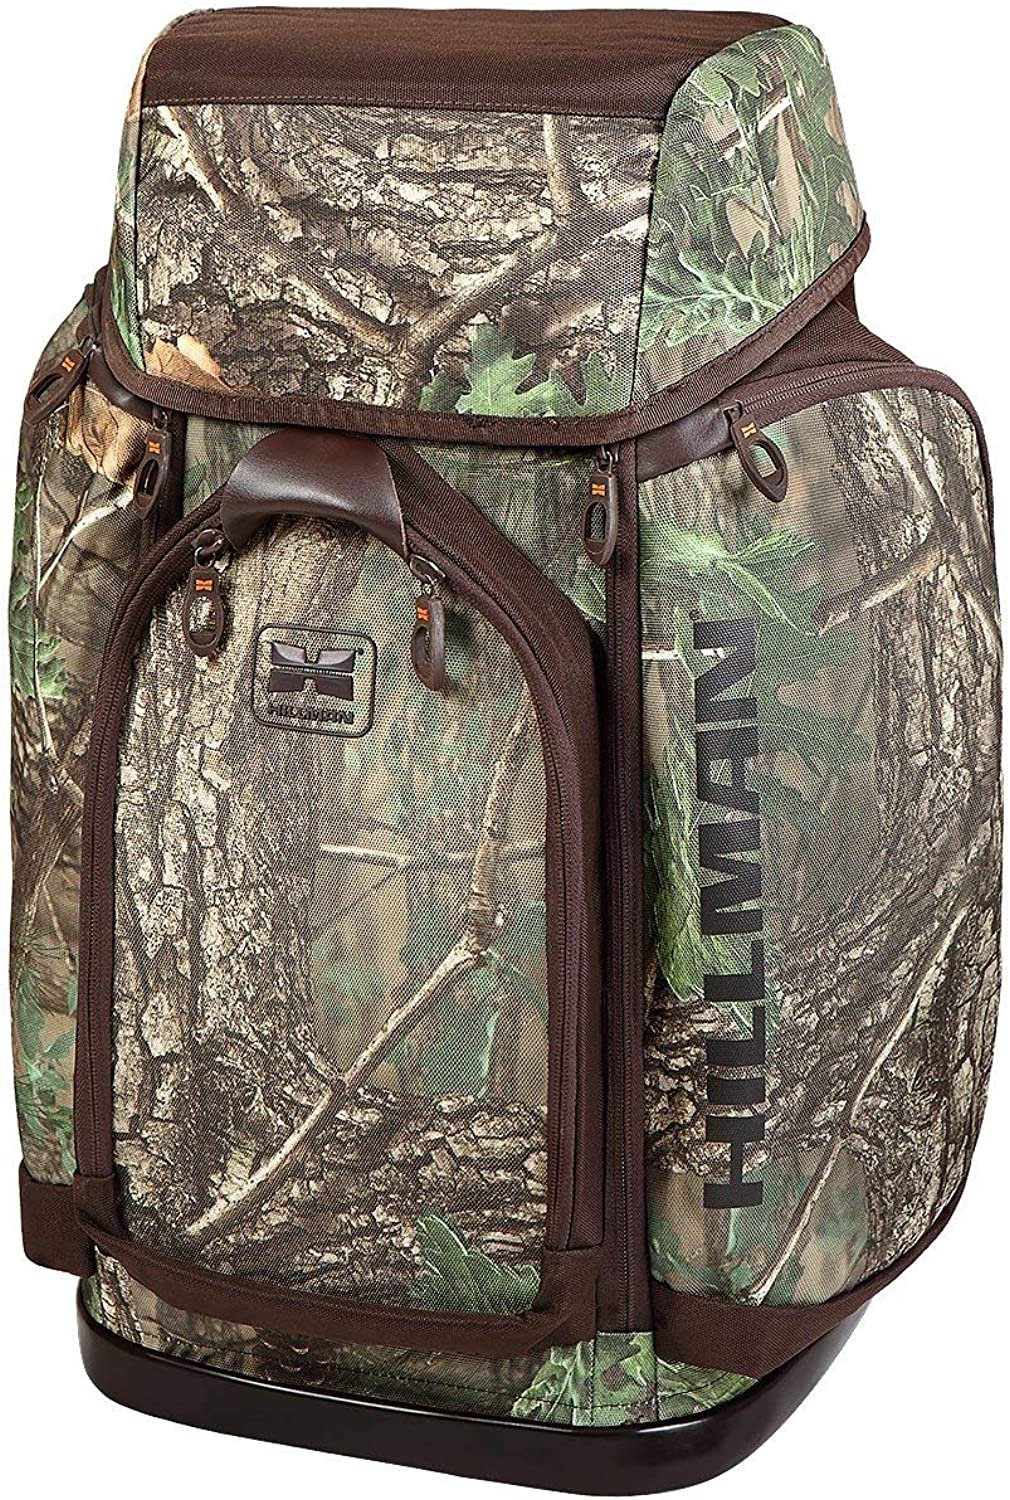 Hillman Camo Hunting Chairpack 30 Chair Backpack Camouflage